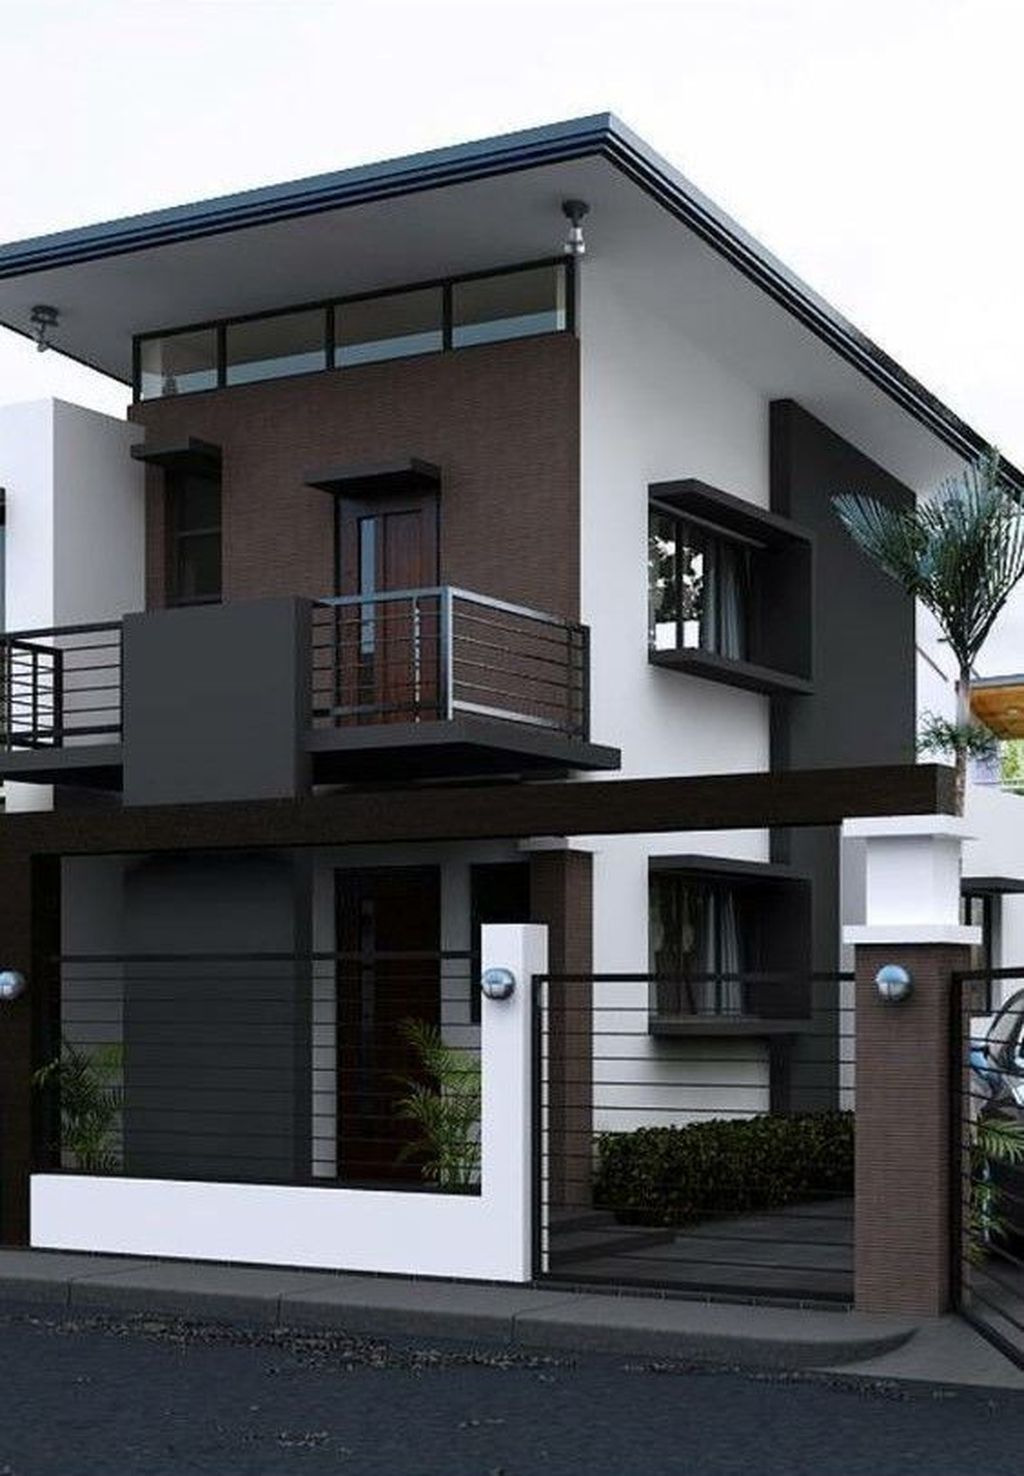 Small Contemporary Home Designs Fresh 38 Awesome Small Contemporary House Designs Ideas to Try